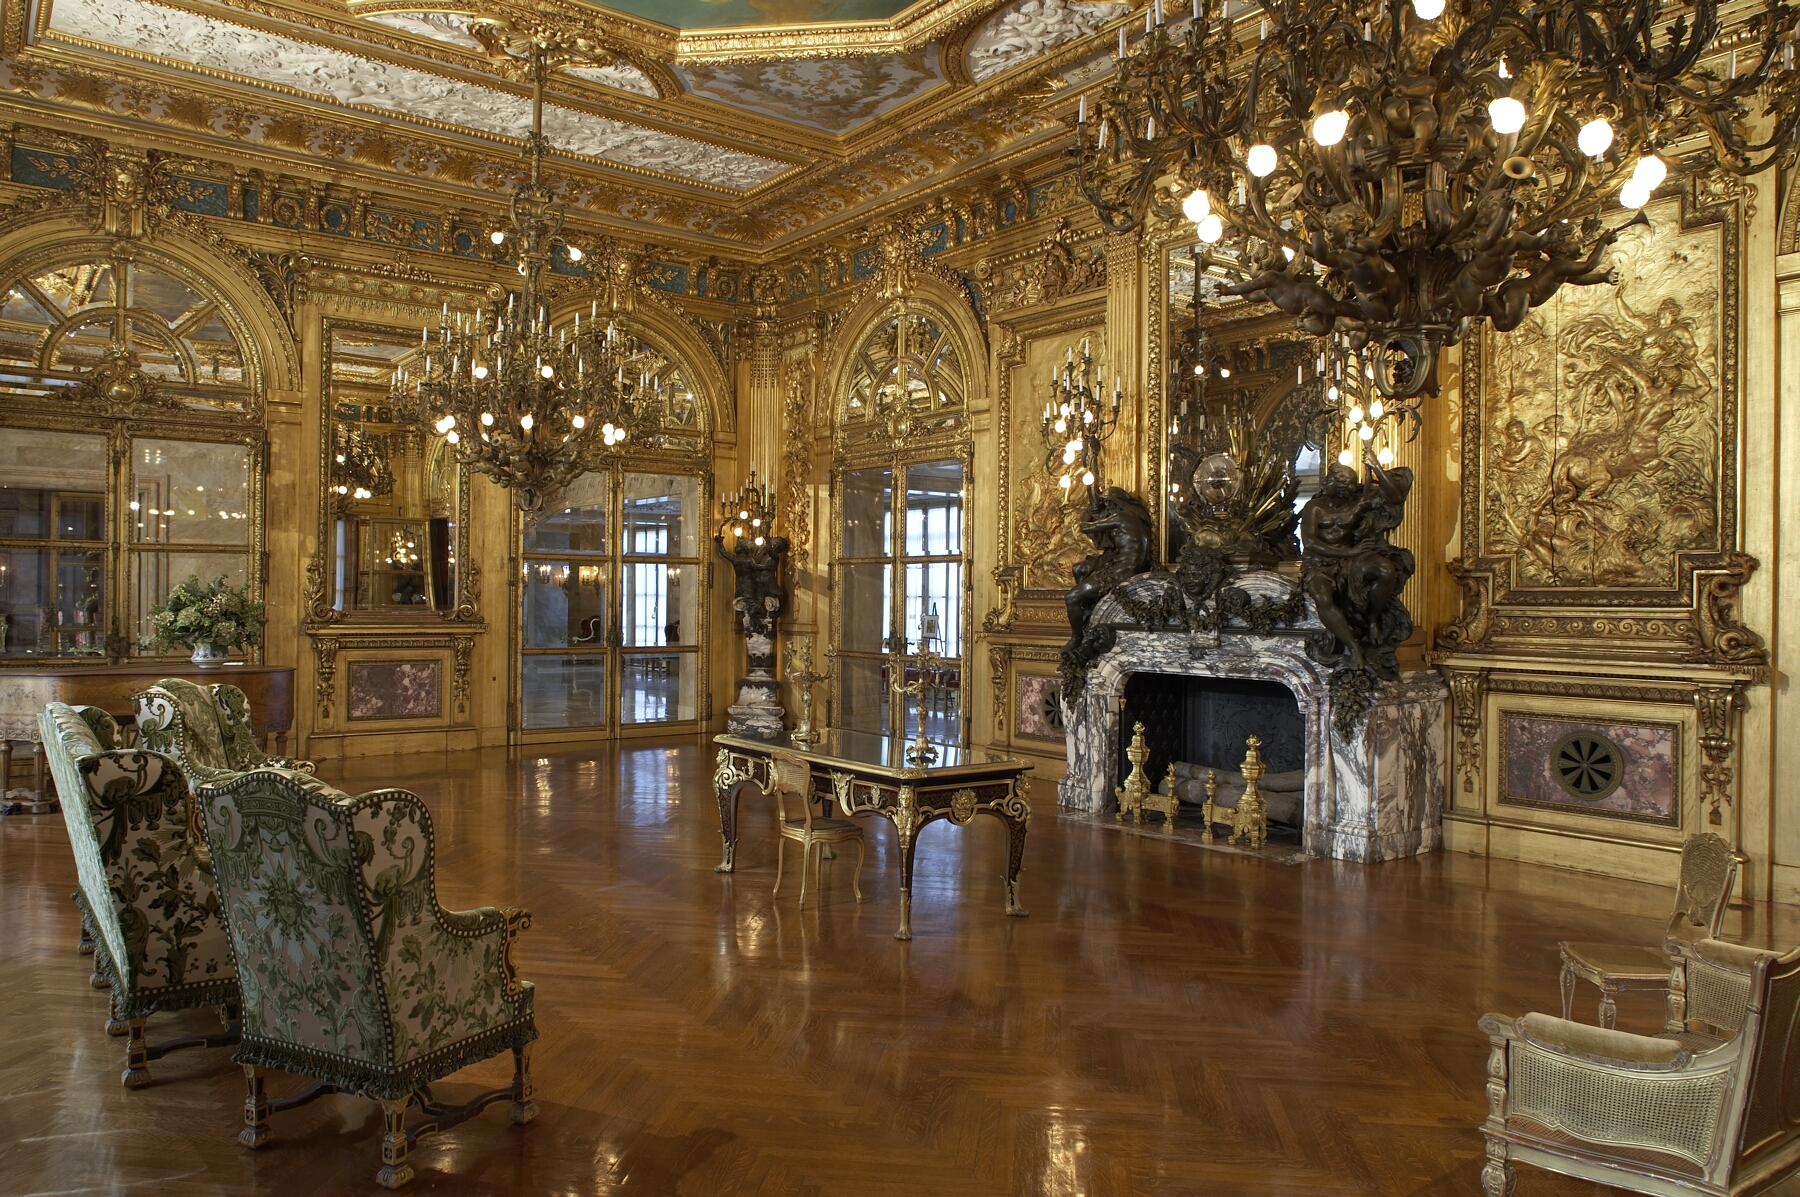 Gilded Age: Pride in Excess | Squared Away Blog